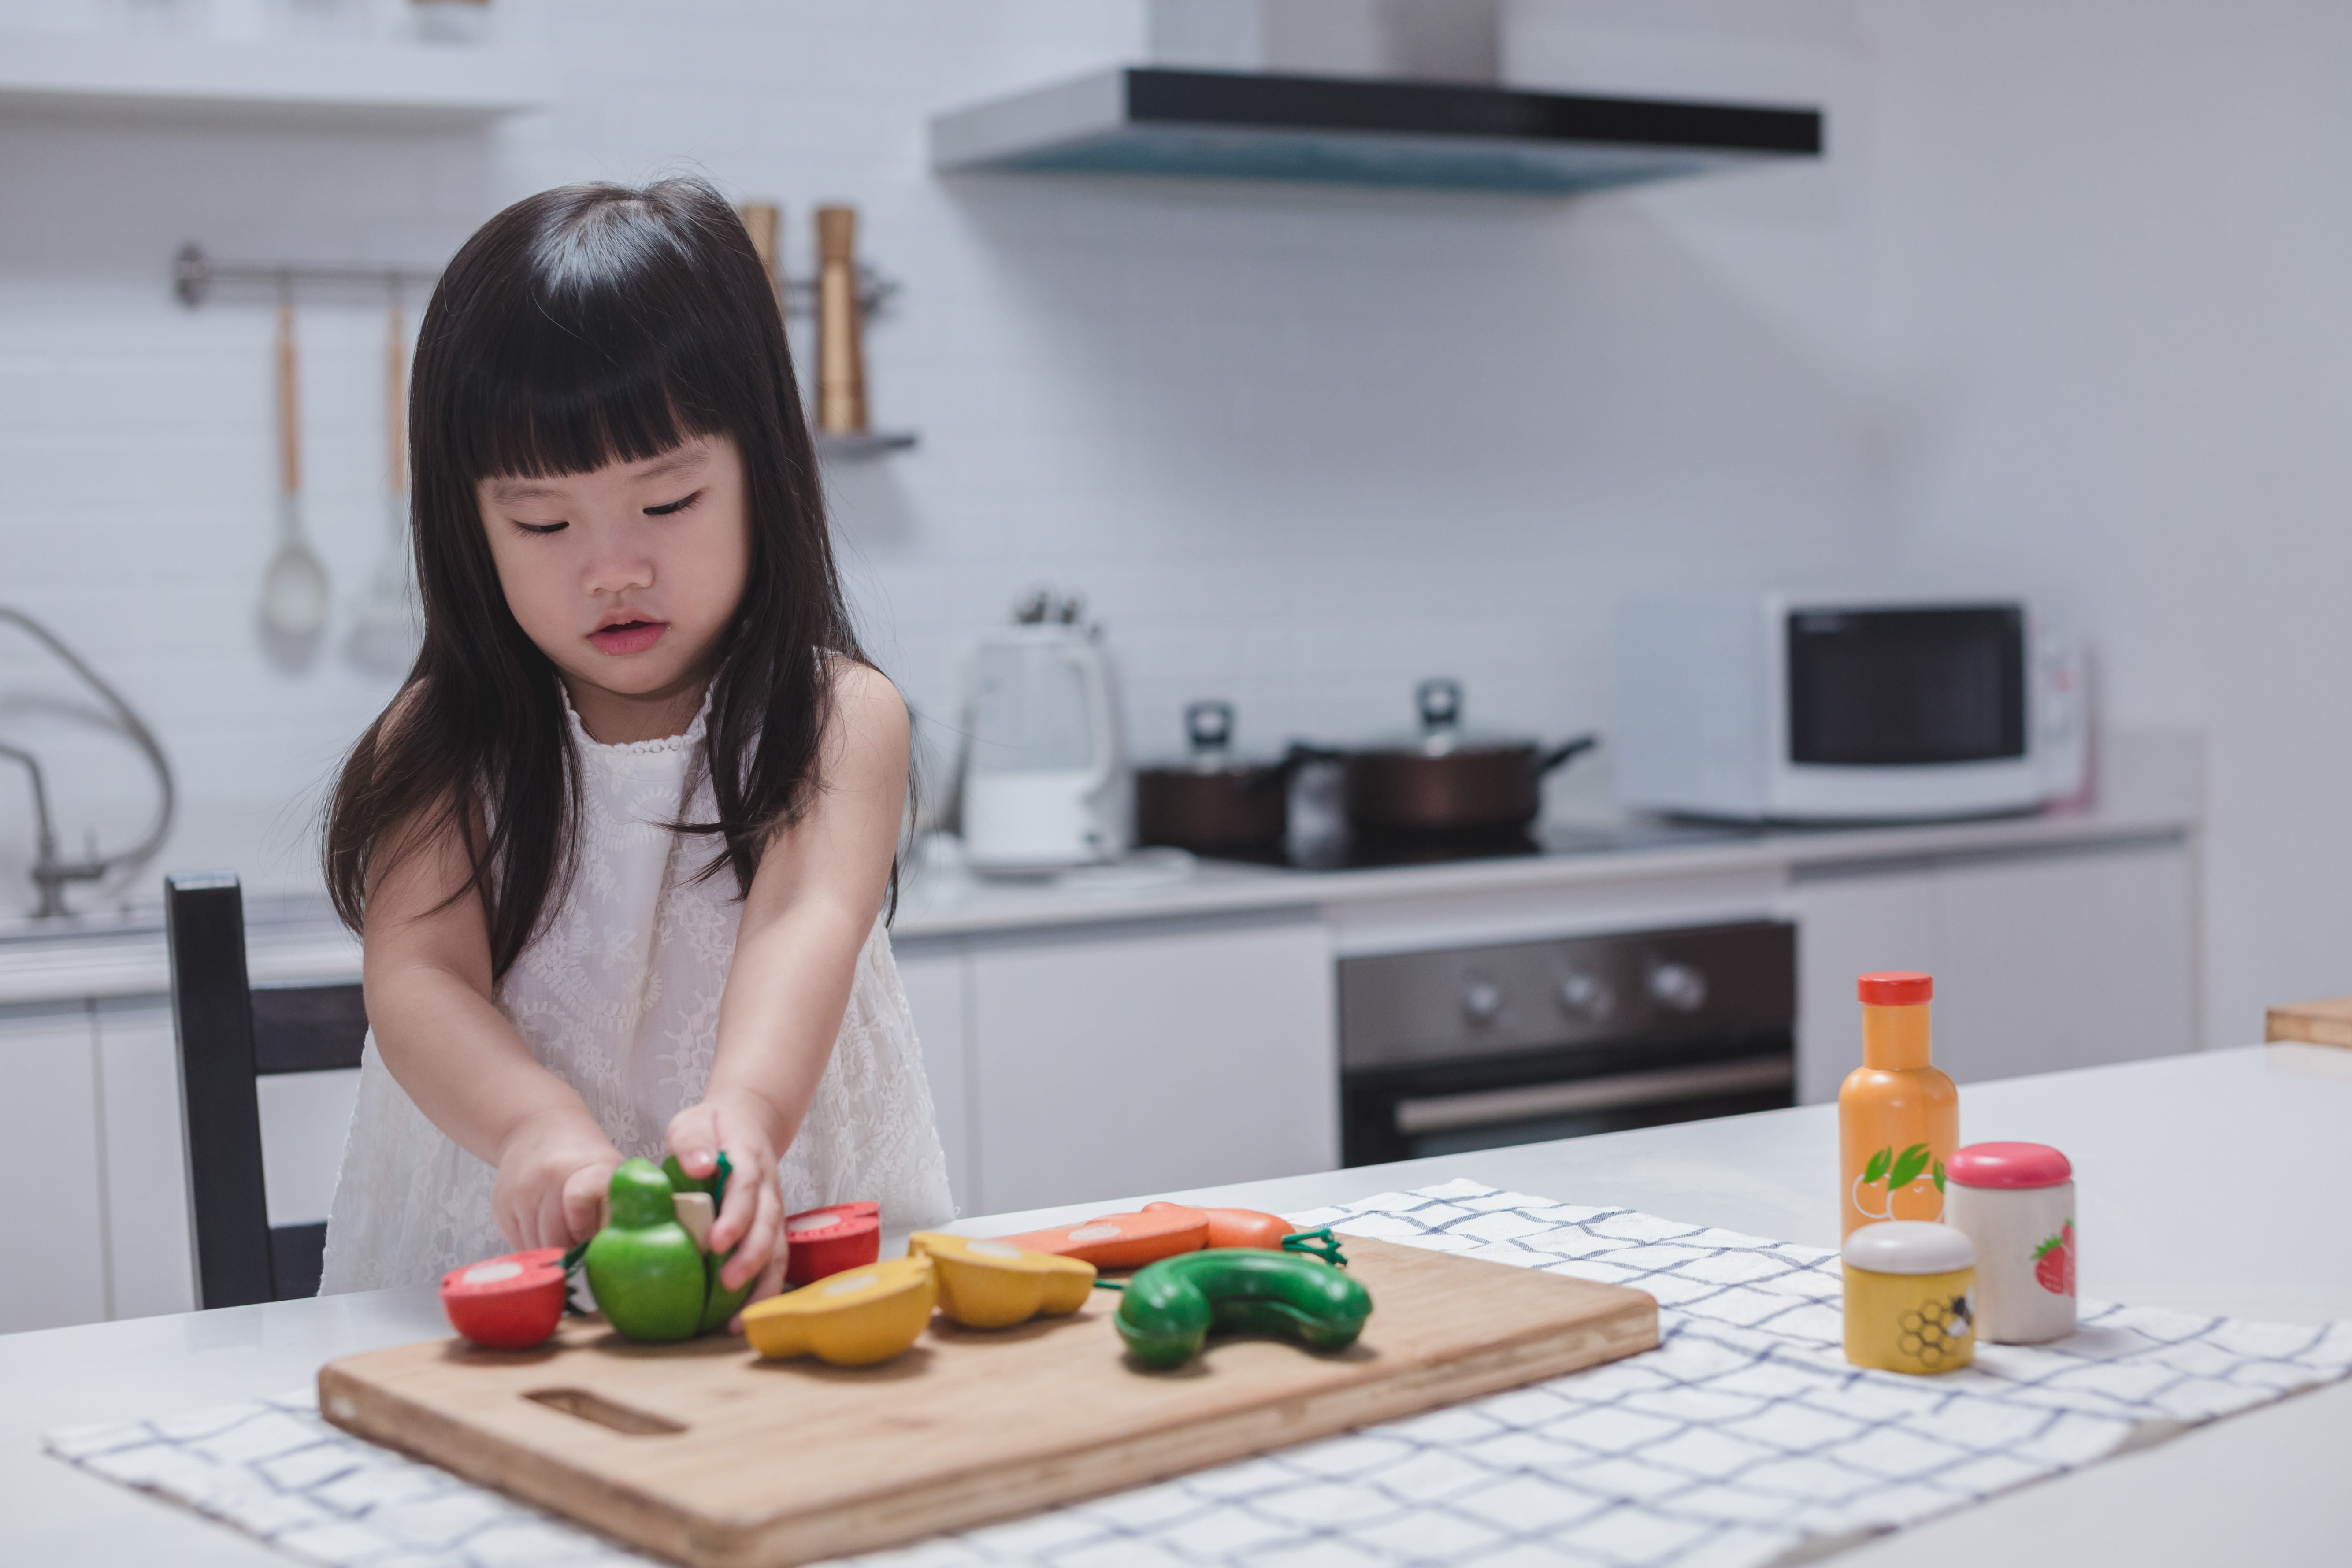 3432_PlanToys_FOOD_and_BEVERAGE_SET_Pretend_Play_Imagination_Language_and_Communications_Social_Fine_Motor_3yrs_Wooden_toys_Education_toys_Safety_Toys_Non-toxic_5.jpg